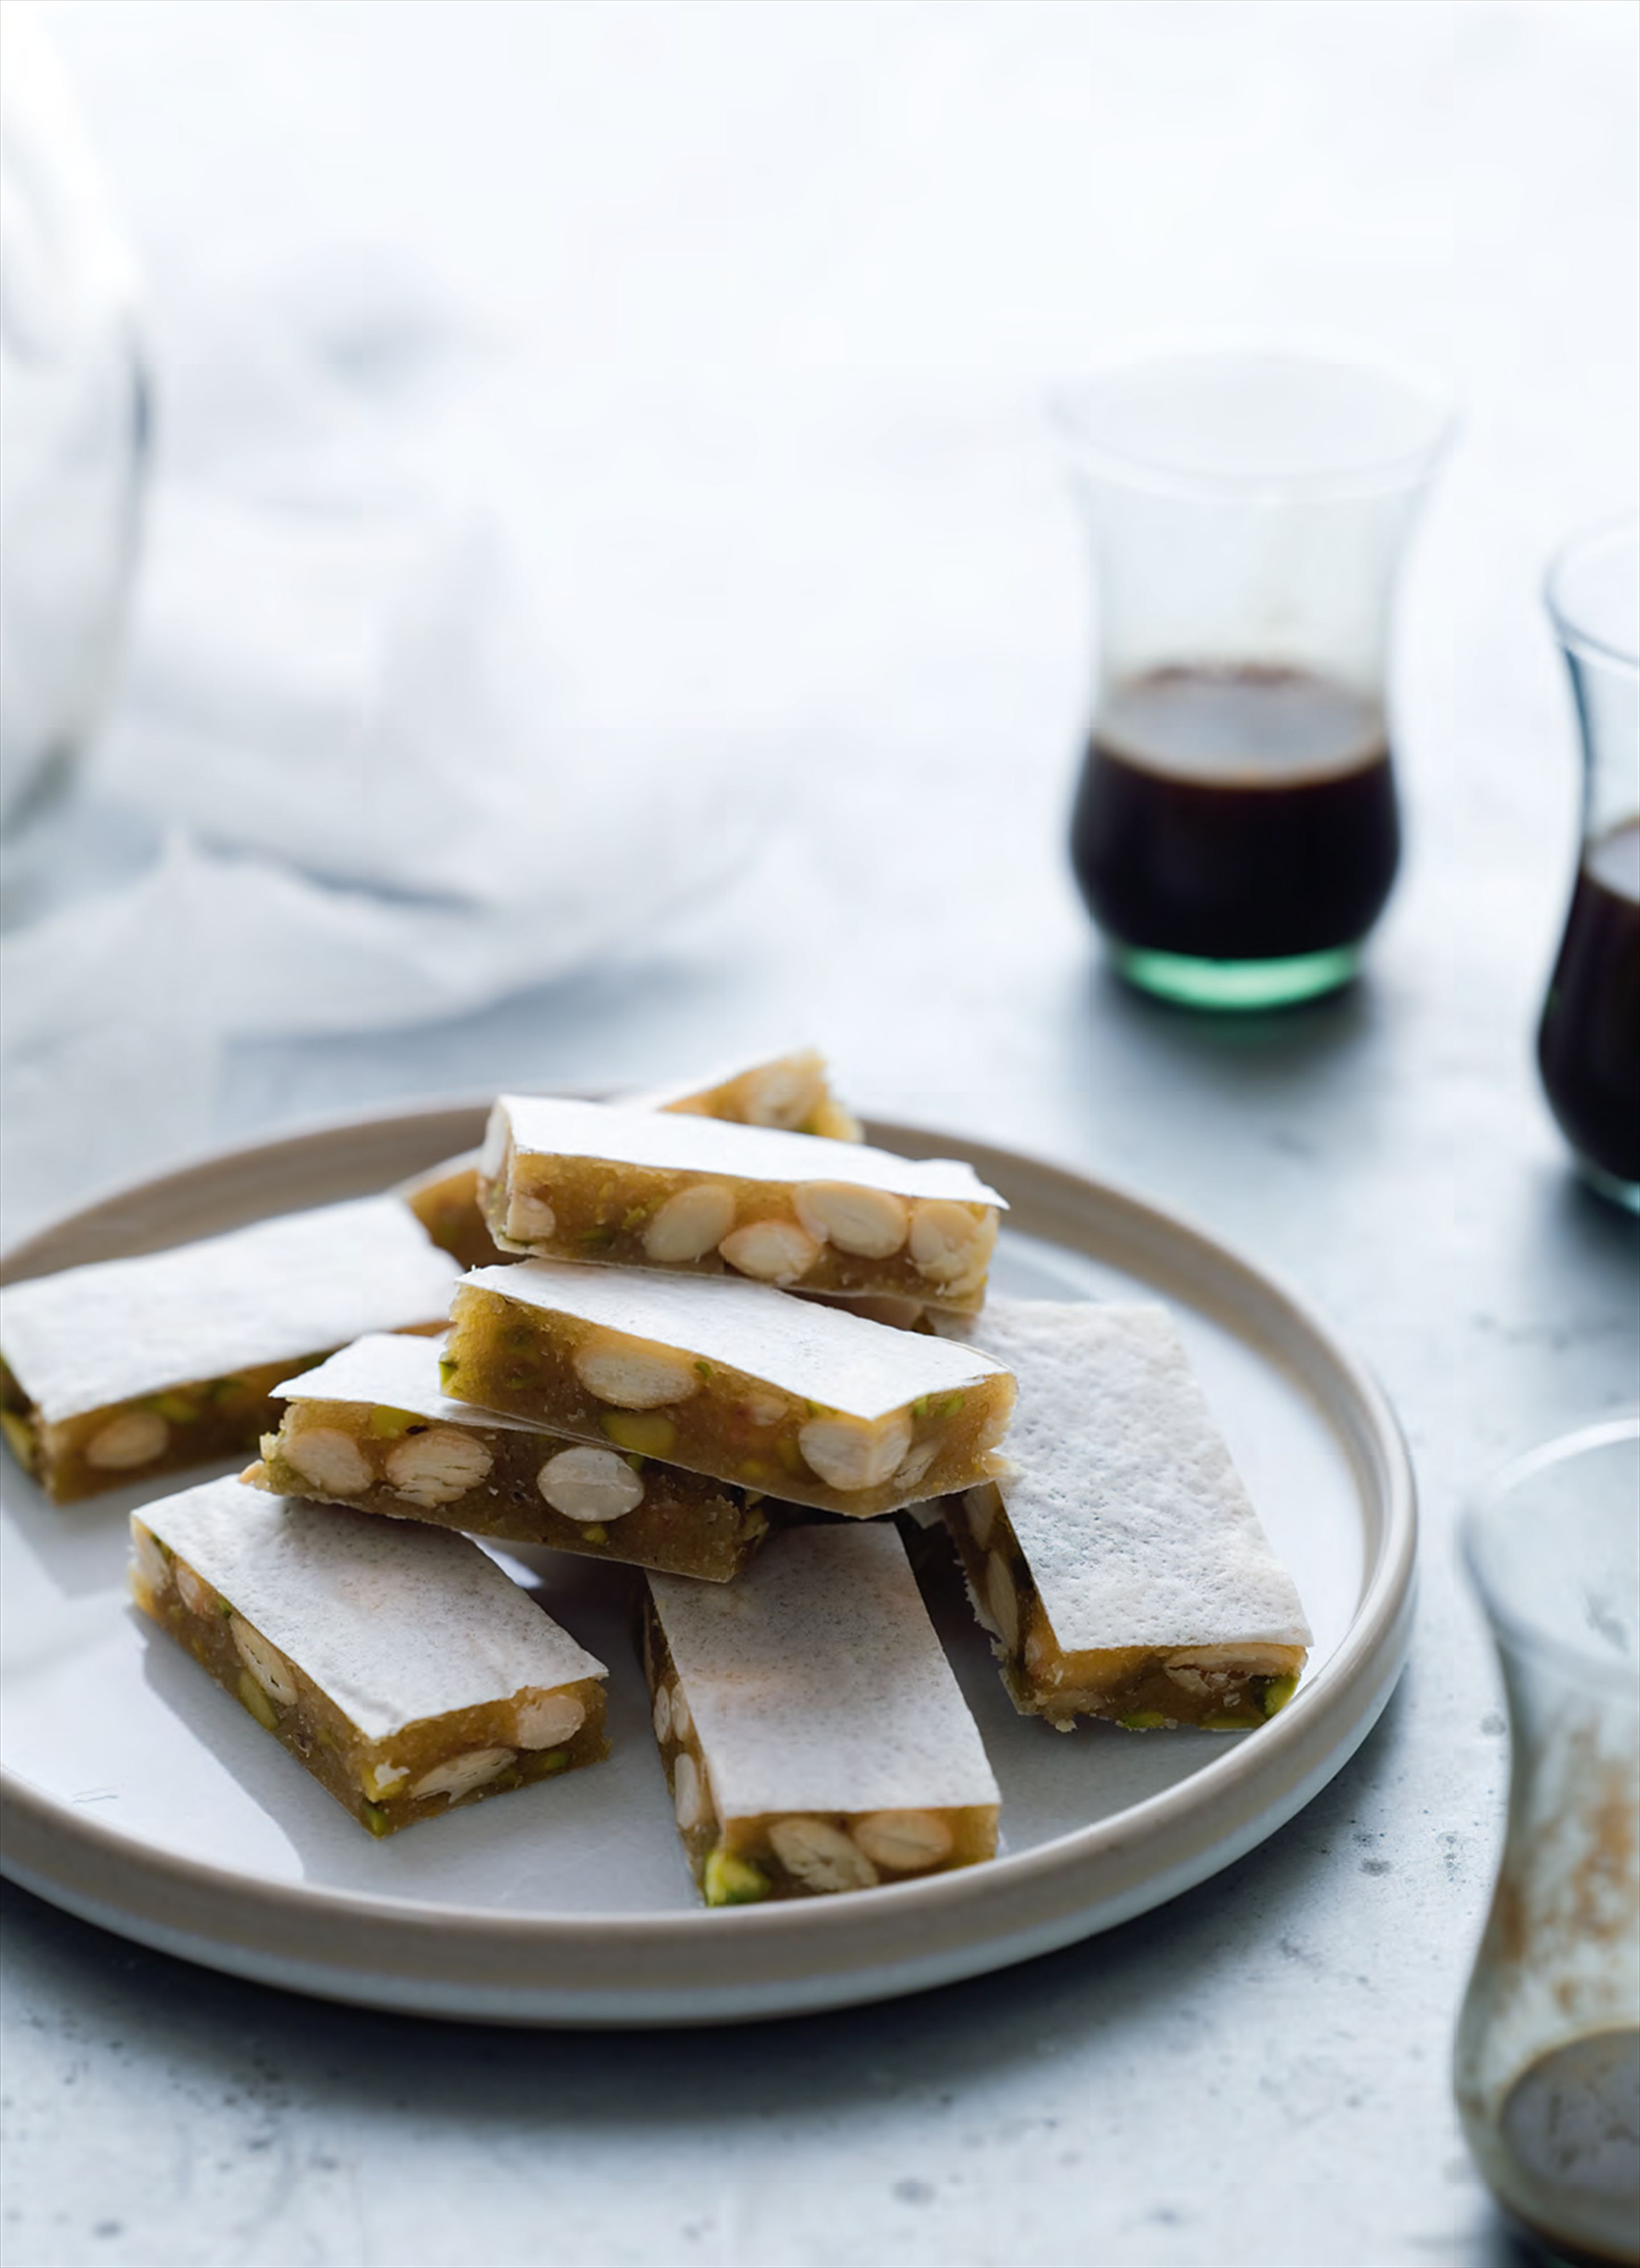 Arabic honey slice